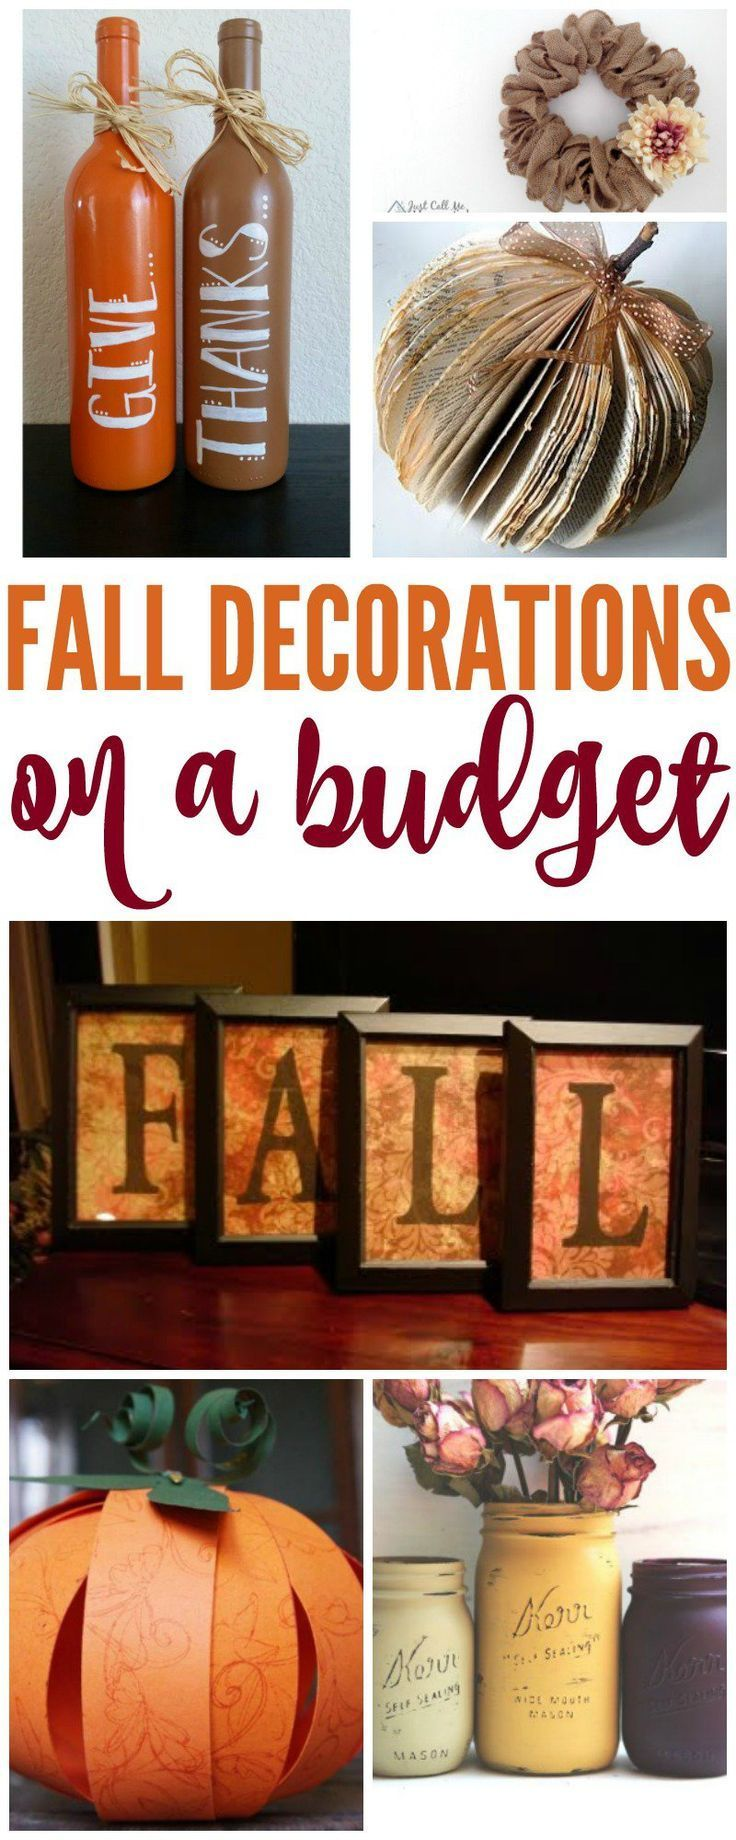 Diy thanksgiving decor pinterest - How To Make Fall Decorations On A Budget Diy Ideas And Simple Crafts For Fall